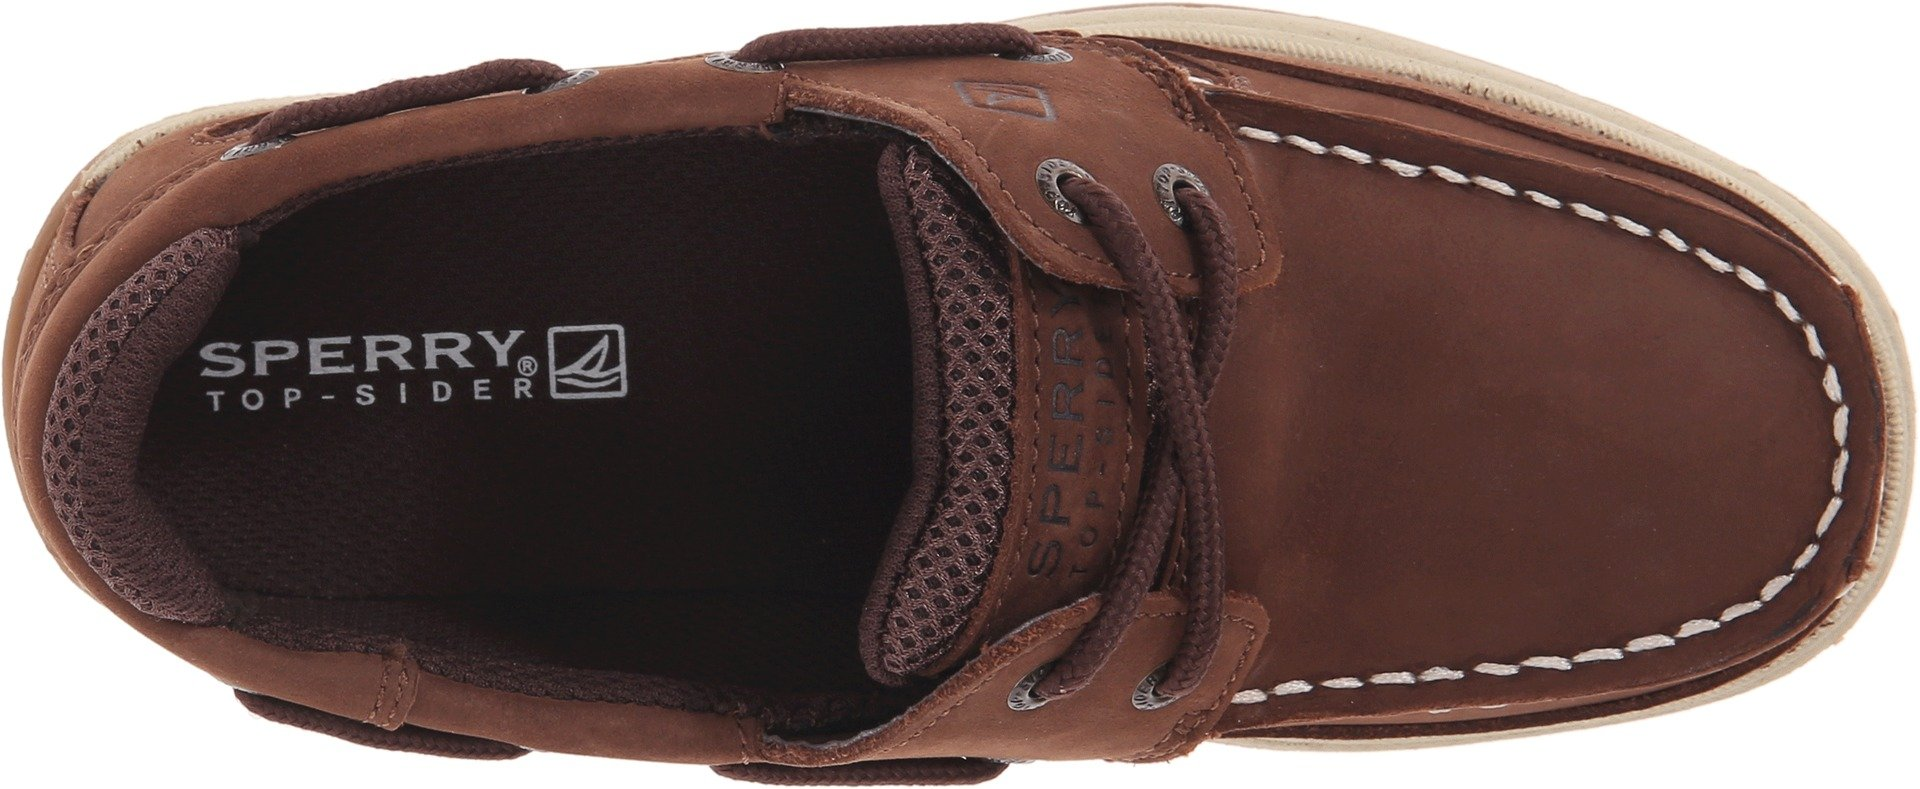 Sperry Boy's Kids, Lanyard Boat Shoes Brown 4 M by Sperry (Image #2)